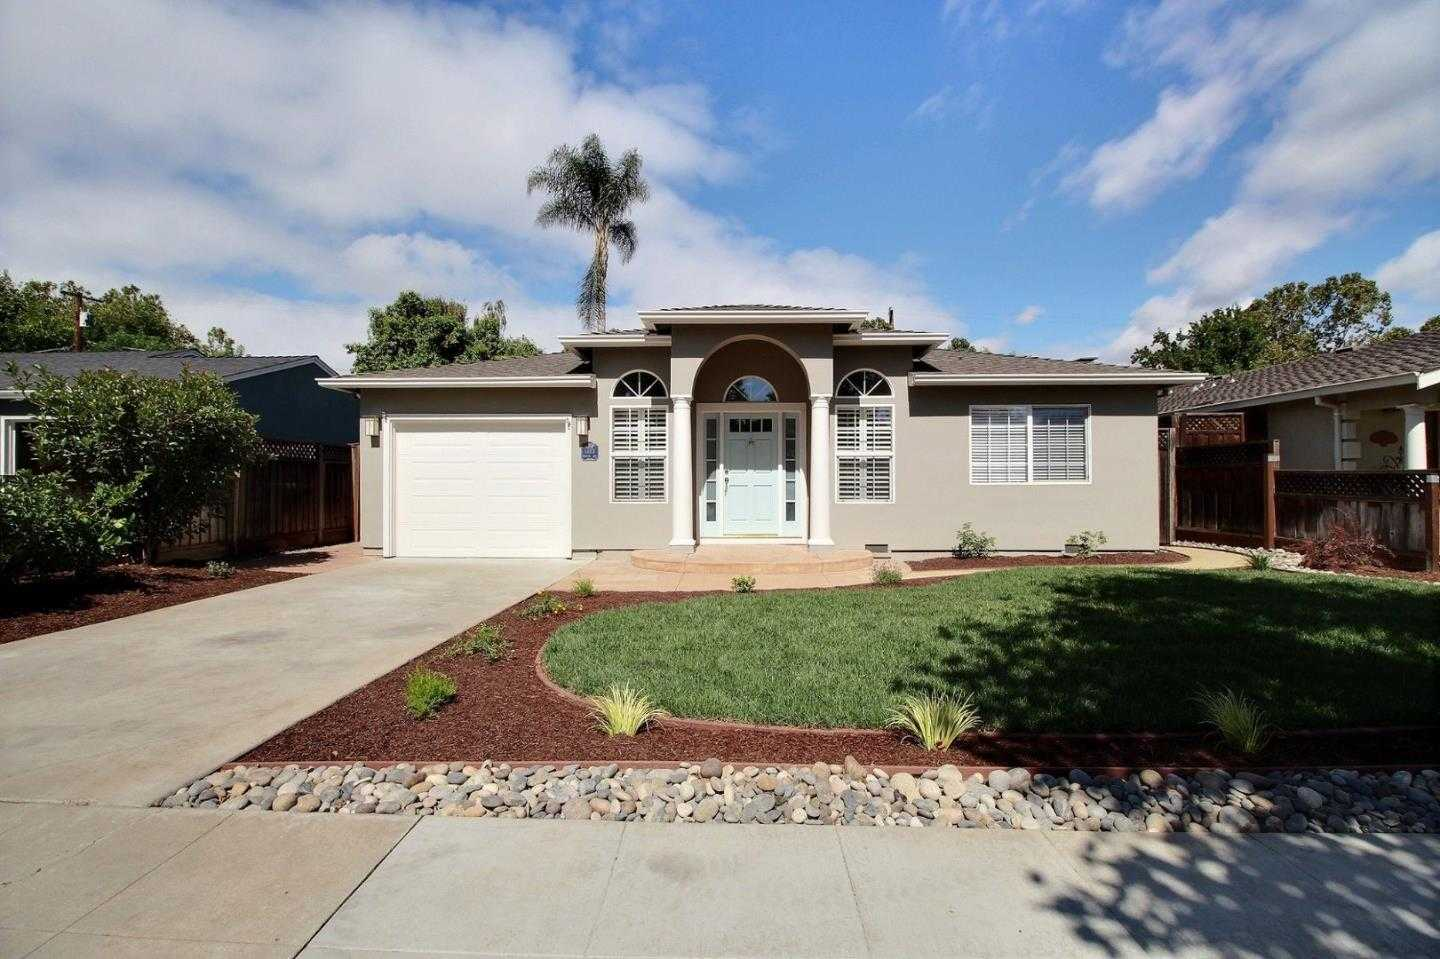 $1,045,000 - 3Br/2Ba -  for Sale in San Jose